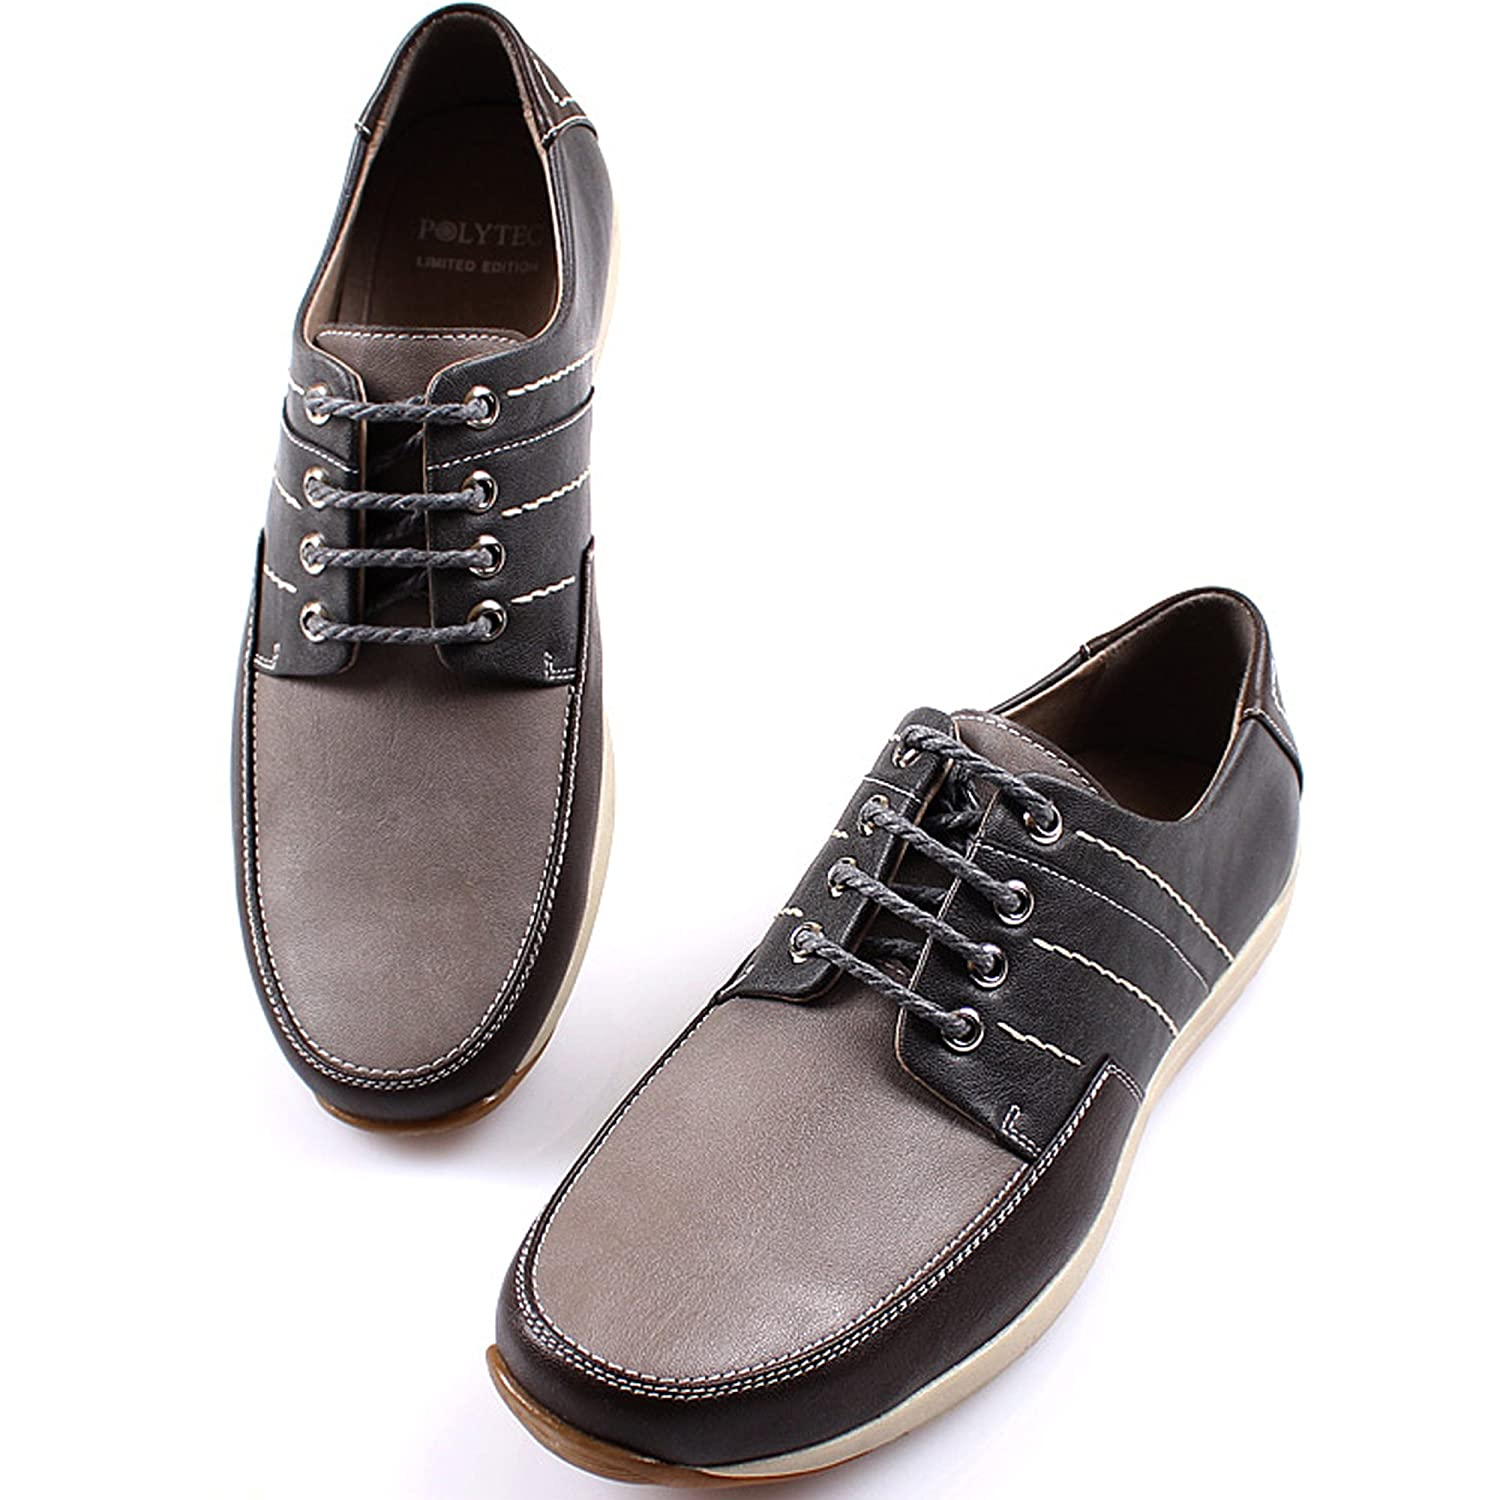 Amazon com   Polytec New Modern Casual Formal Lace up Oxford Men